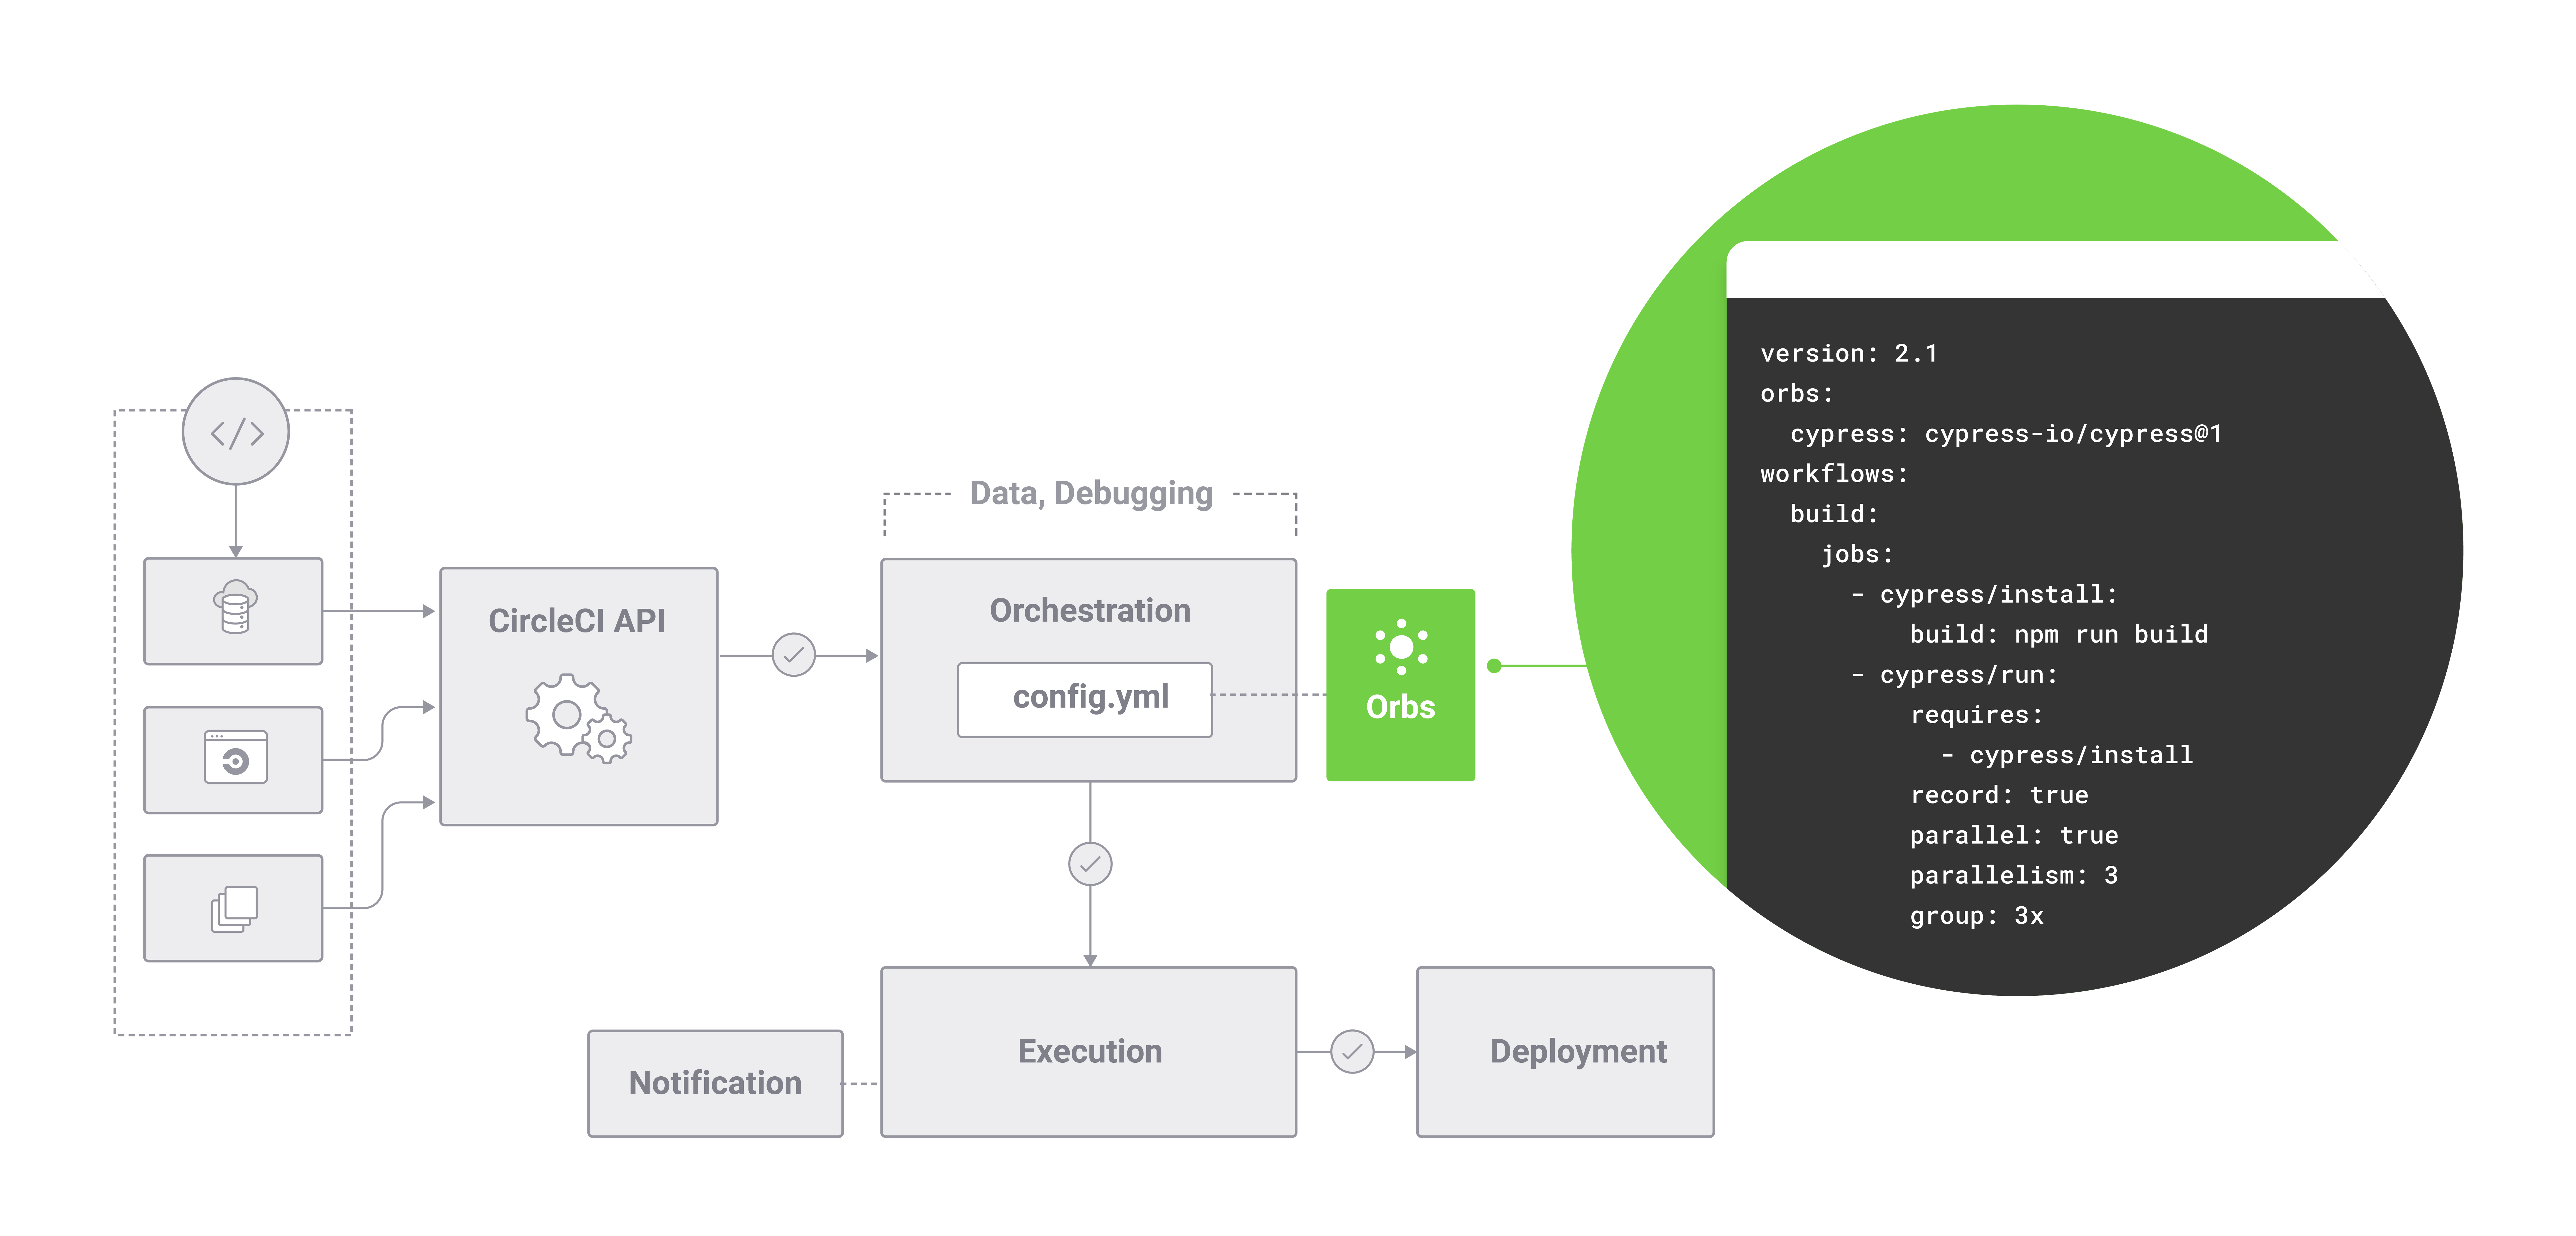 Image of how CircleCI works. CircleCI's orchestration server processes builds based on the YAML file, which contains a Cypress orb that resolves during runtime. Using instructions from the Cypress orb, CircleCI builds an app on Cypress.